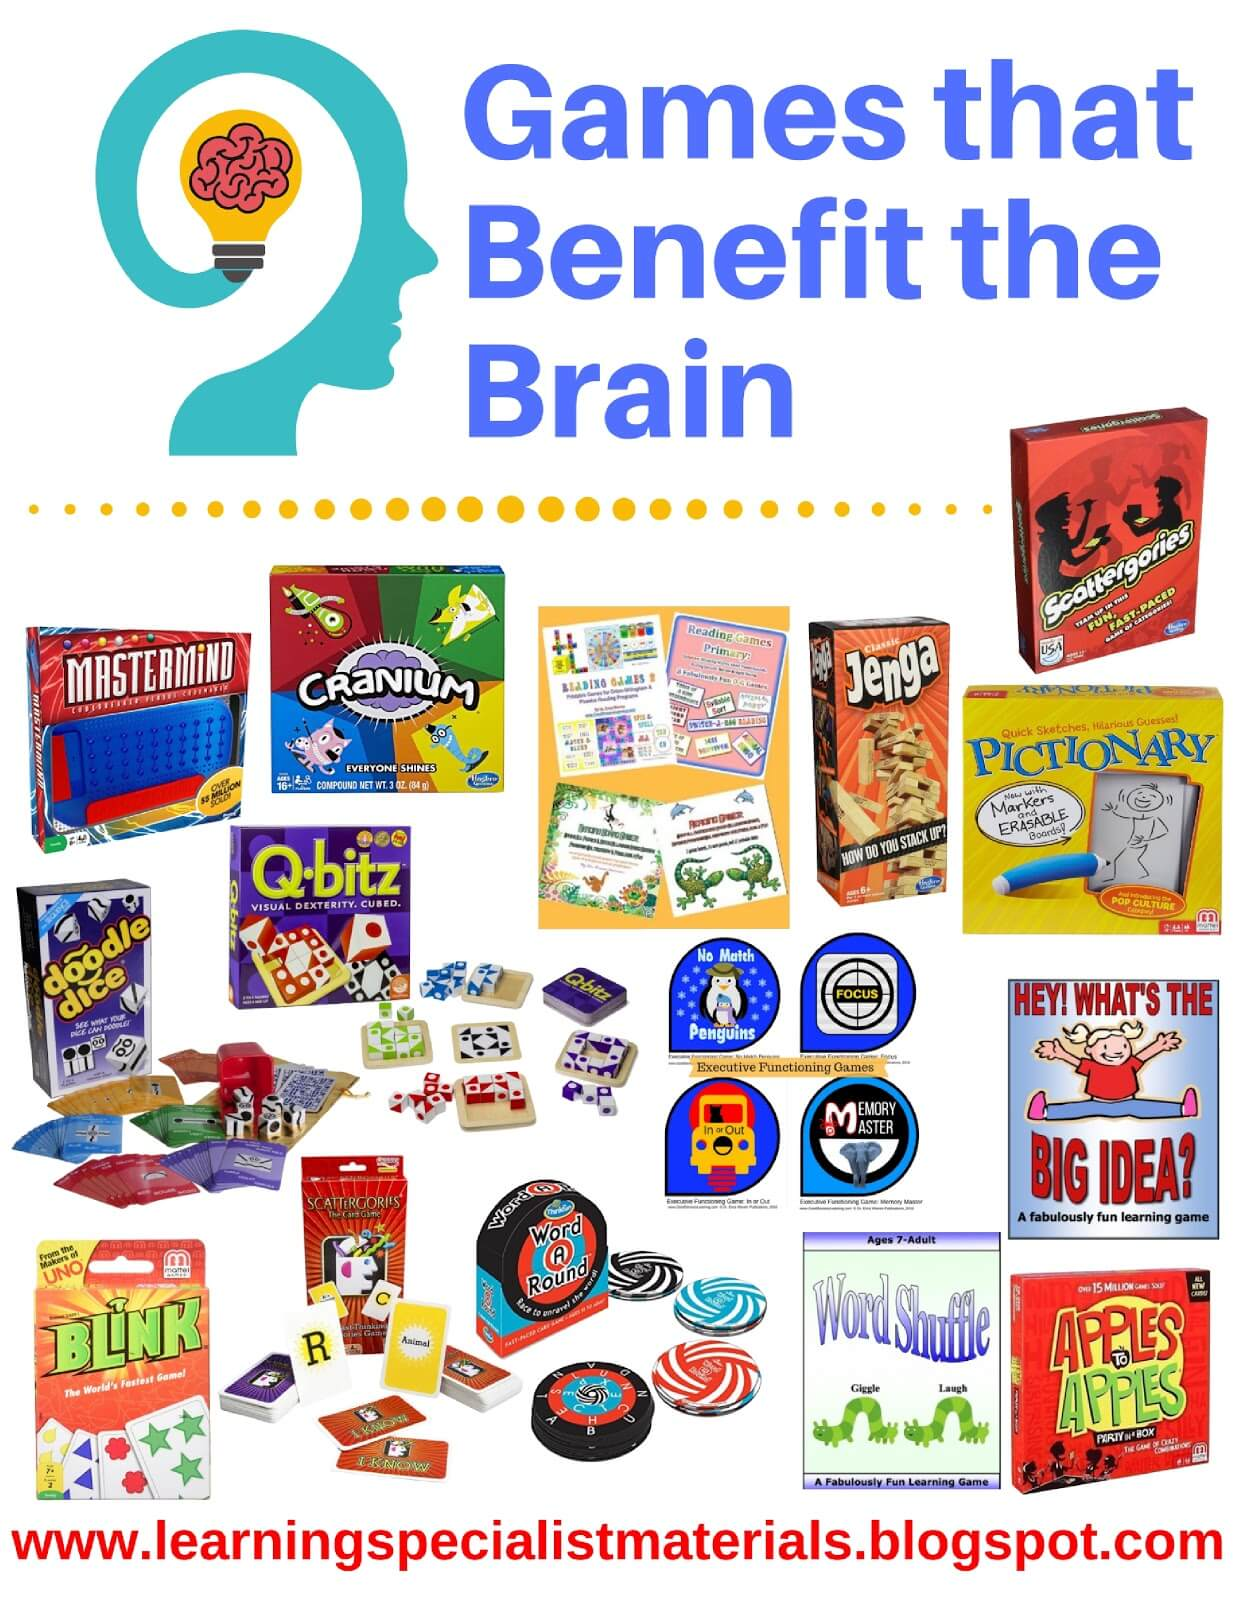 Games that Benefit the Brain